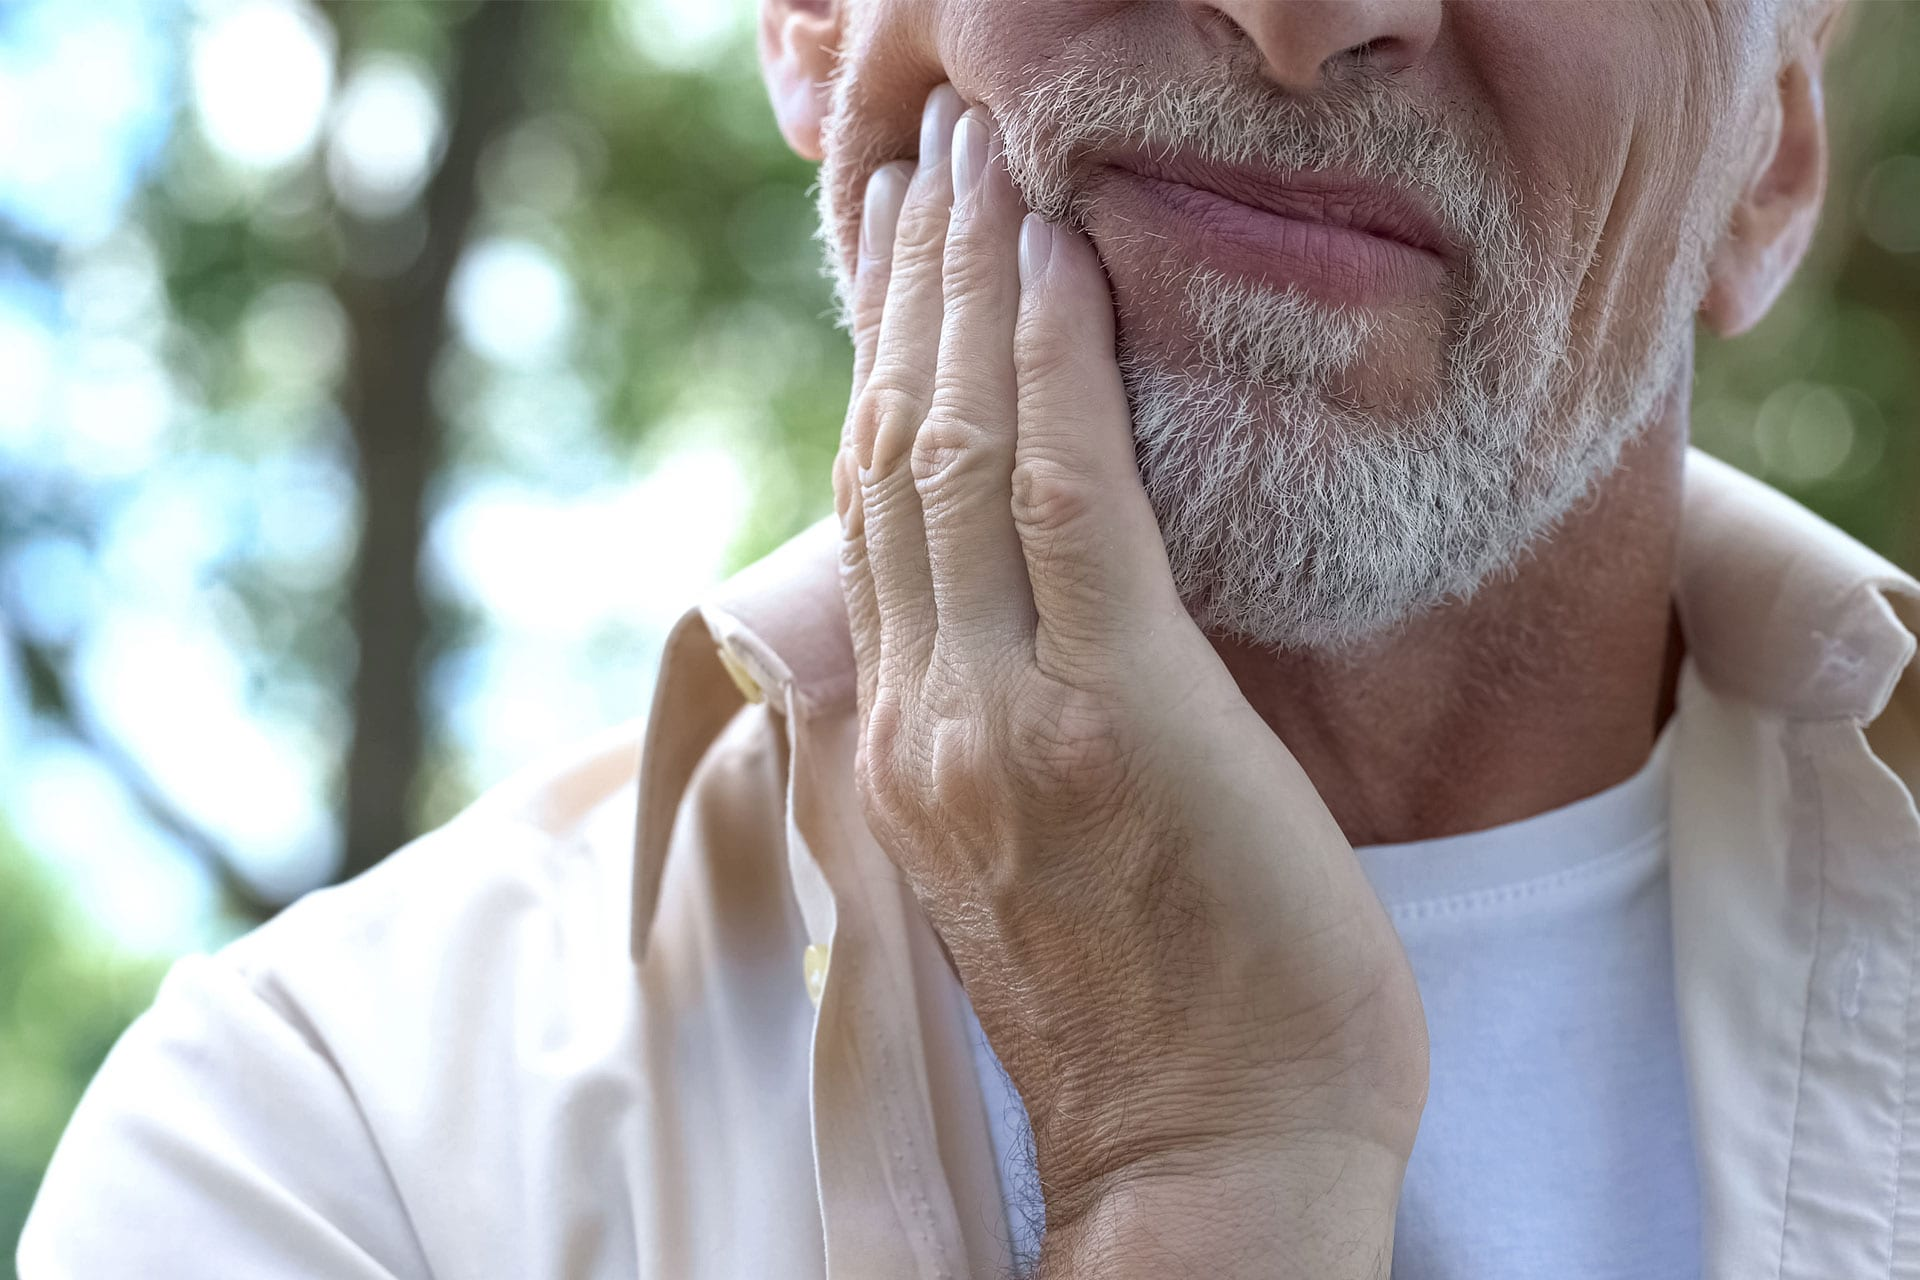 Man with a toothache touches his cheek.